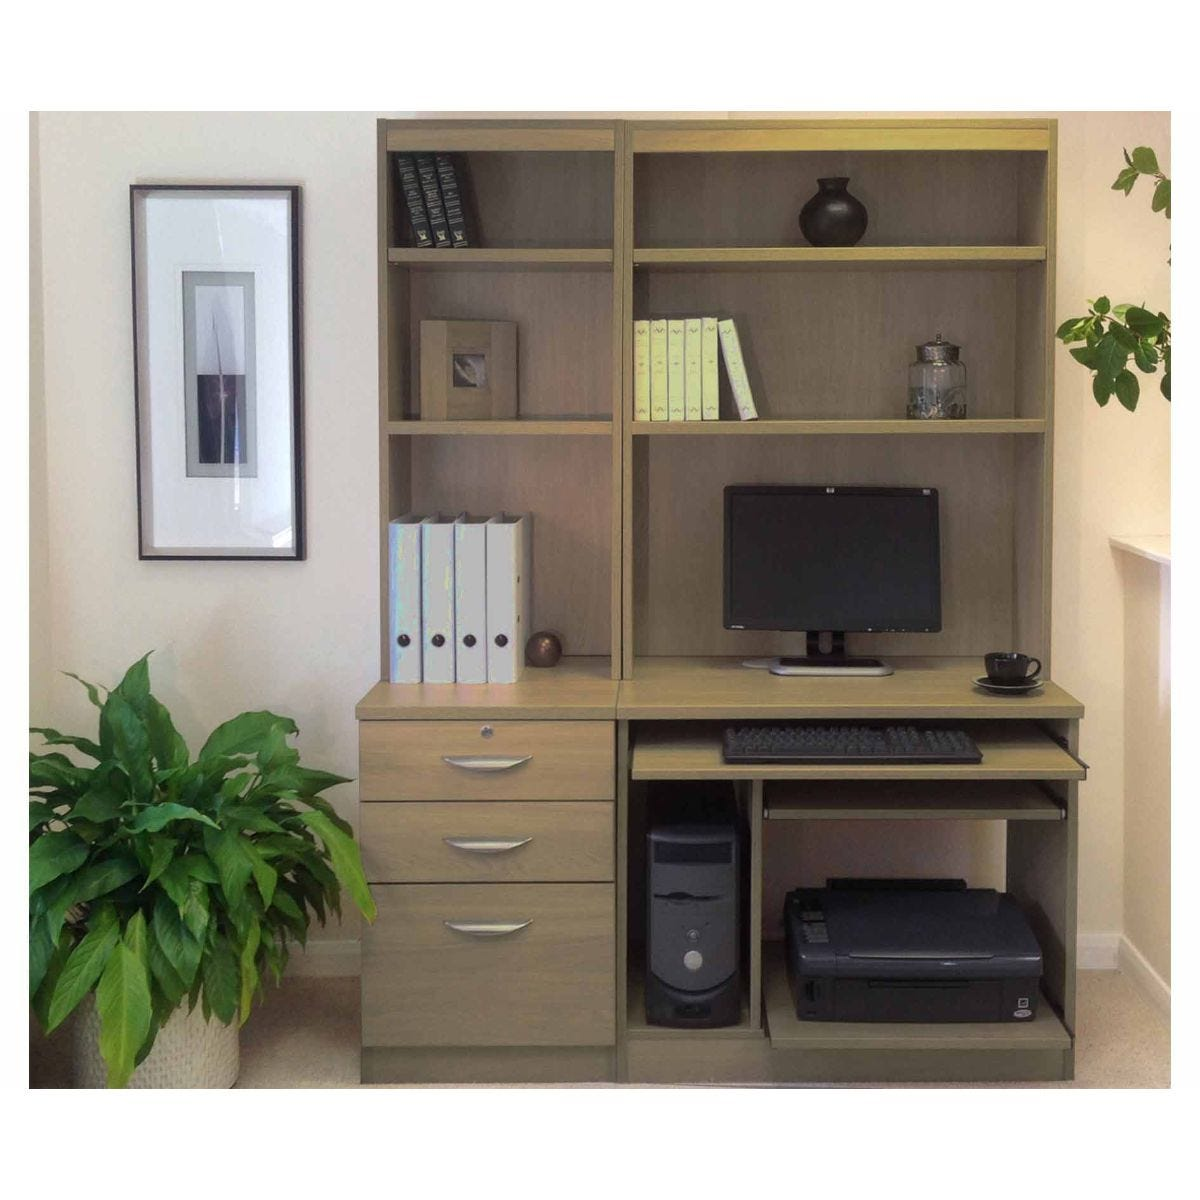 R White Home Office Tall Narrow Desk with Shelving, English Oak